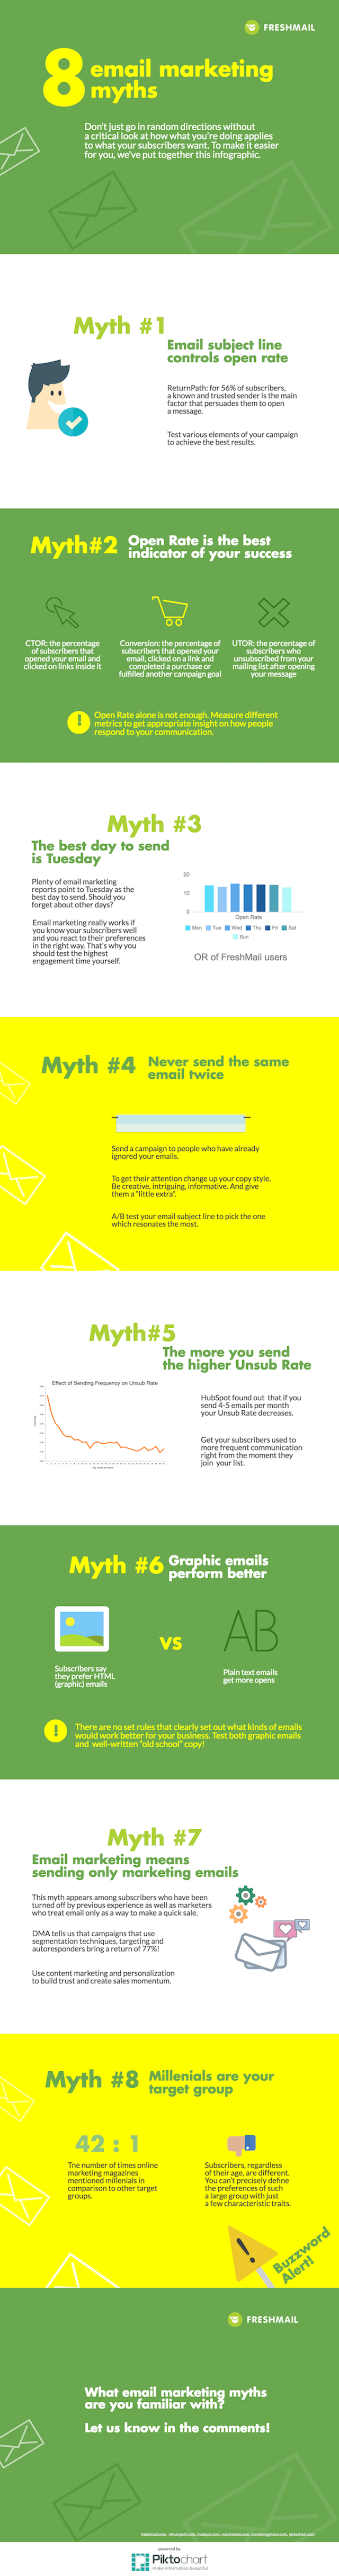 email marketing myths